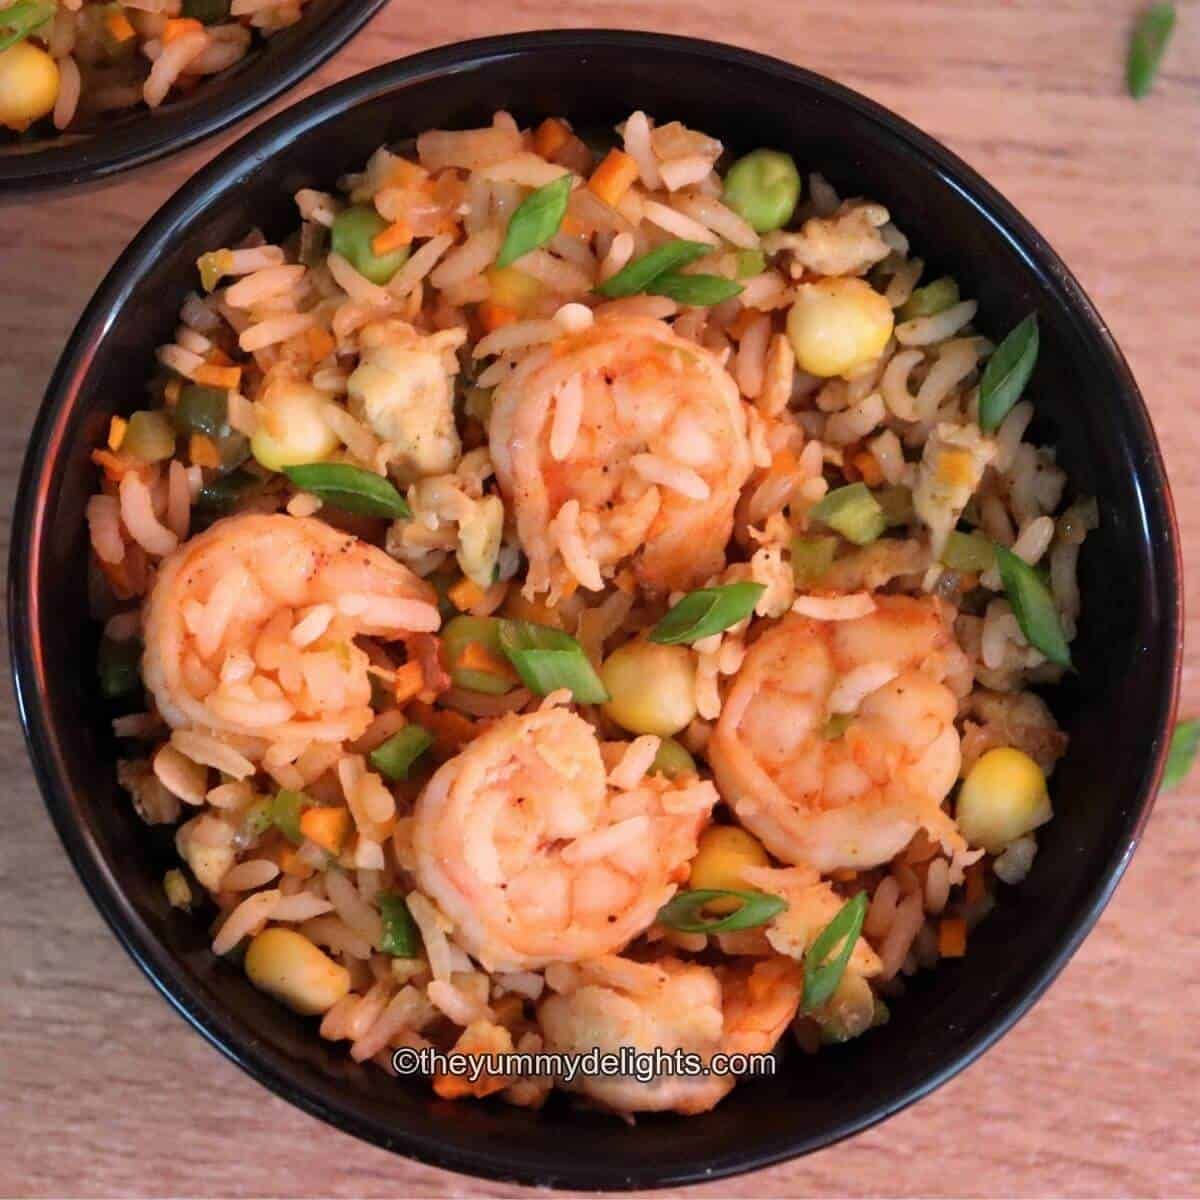 prawn fired rice served in a black bowl